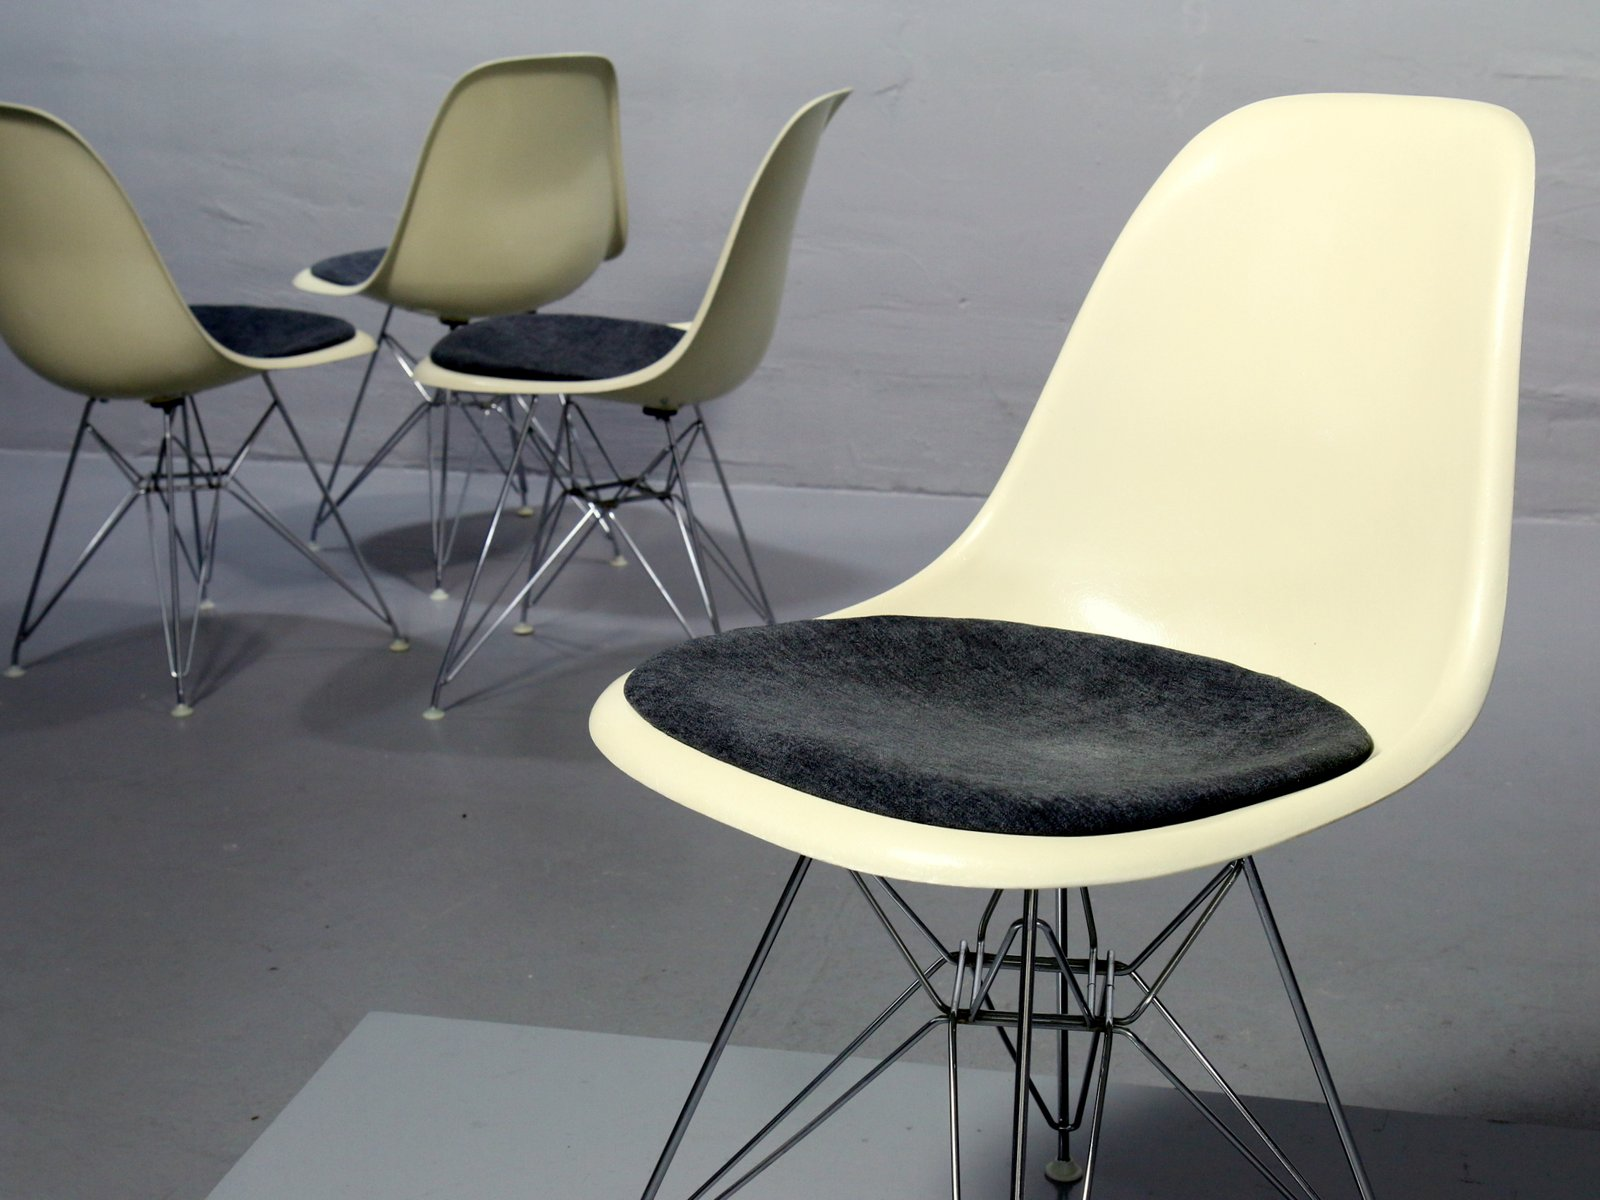 vintage side chair by charles ray eames for vitra for sale at pamono. Black Bedroom Furniture Sets. Home Design Ideas